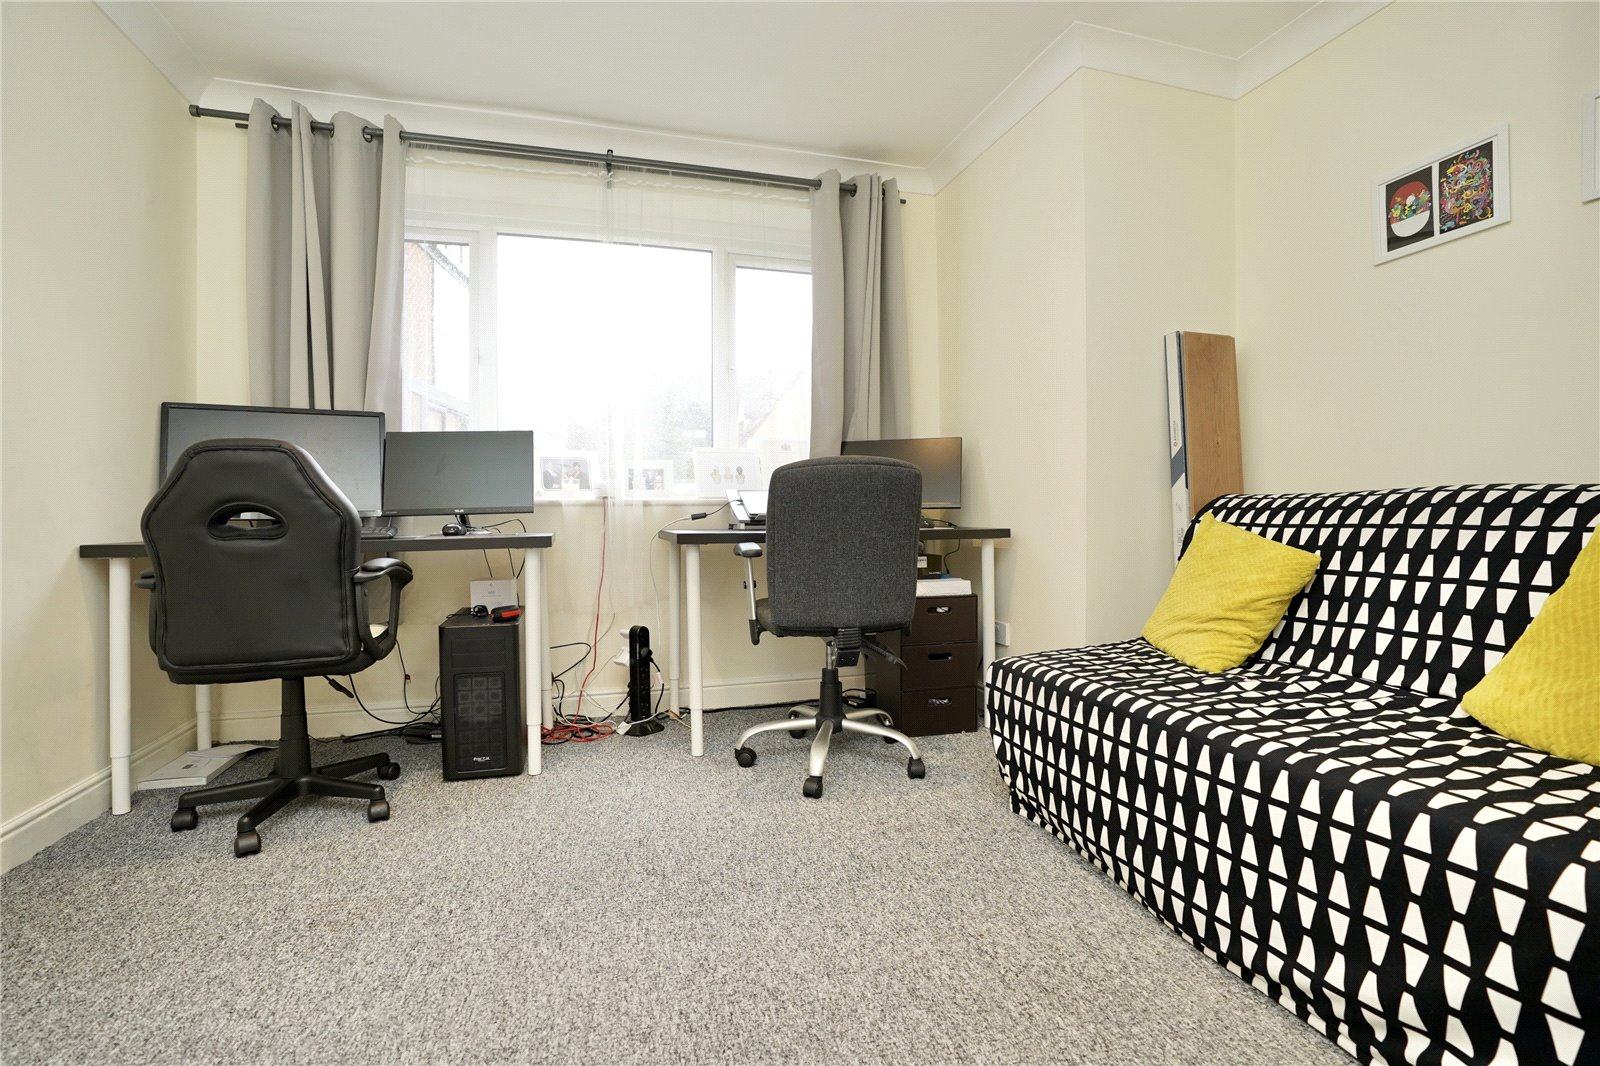 2 bed apartment for sale in Earith, PE28 3PP 9